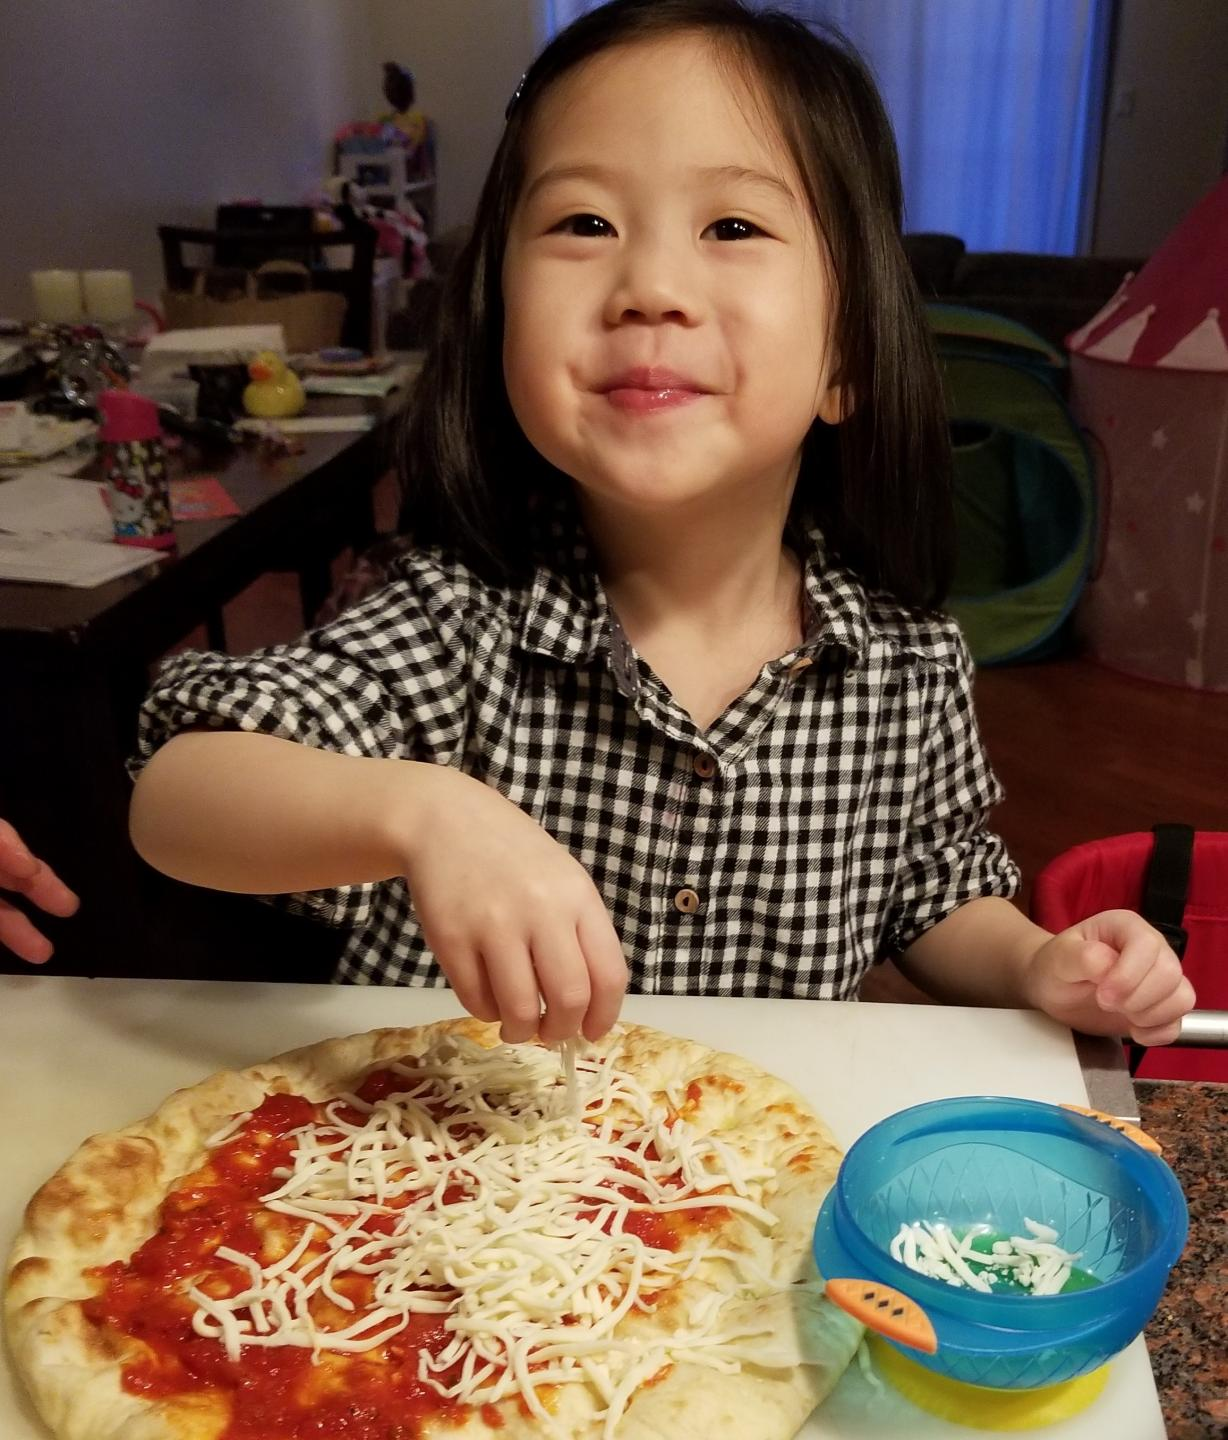 little girl making pizza